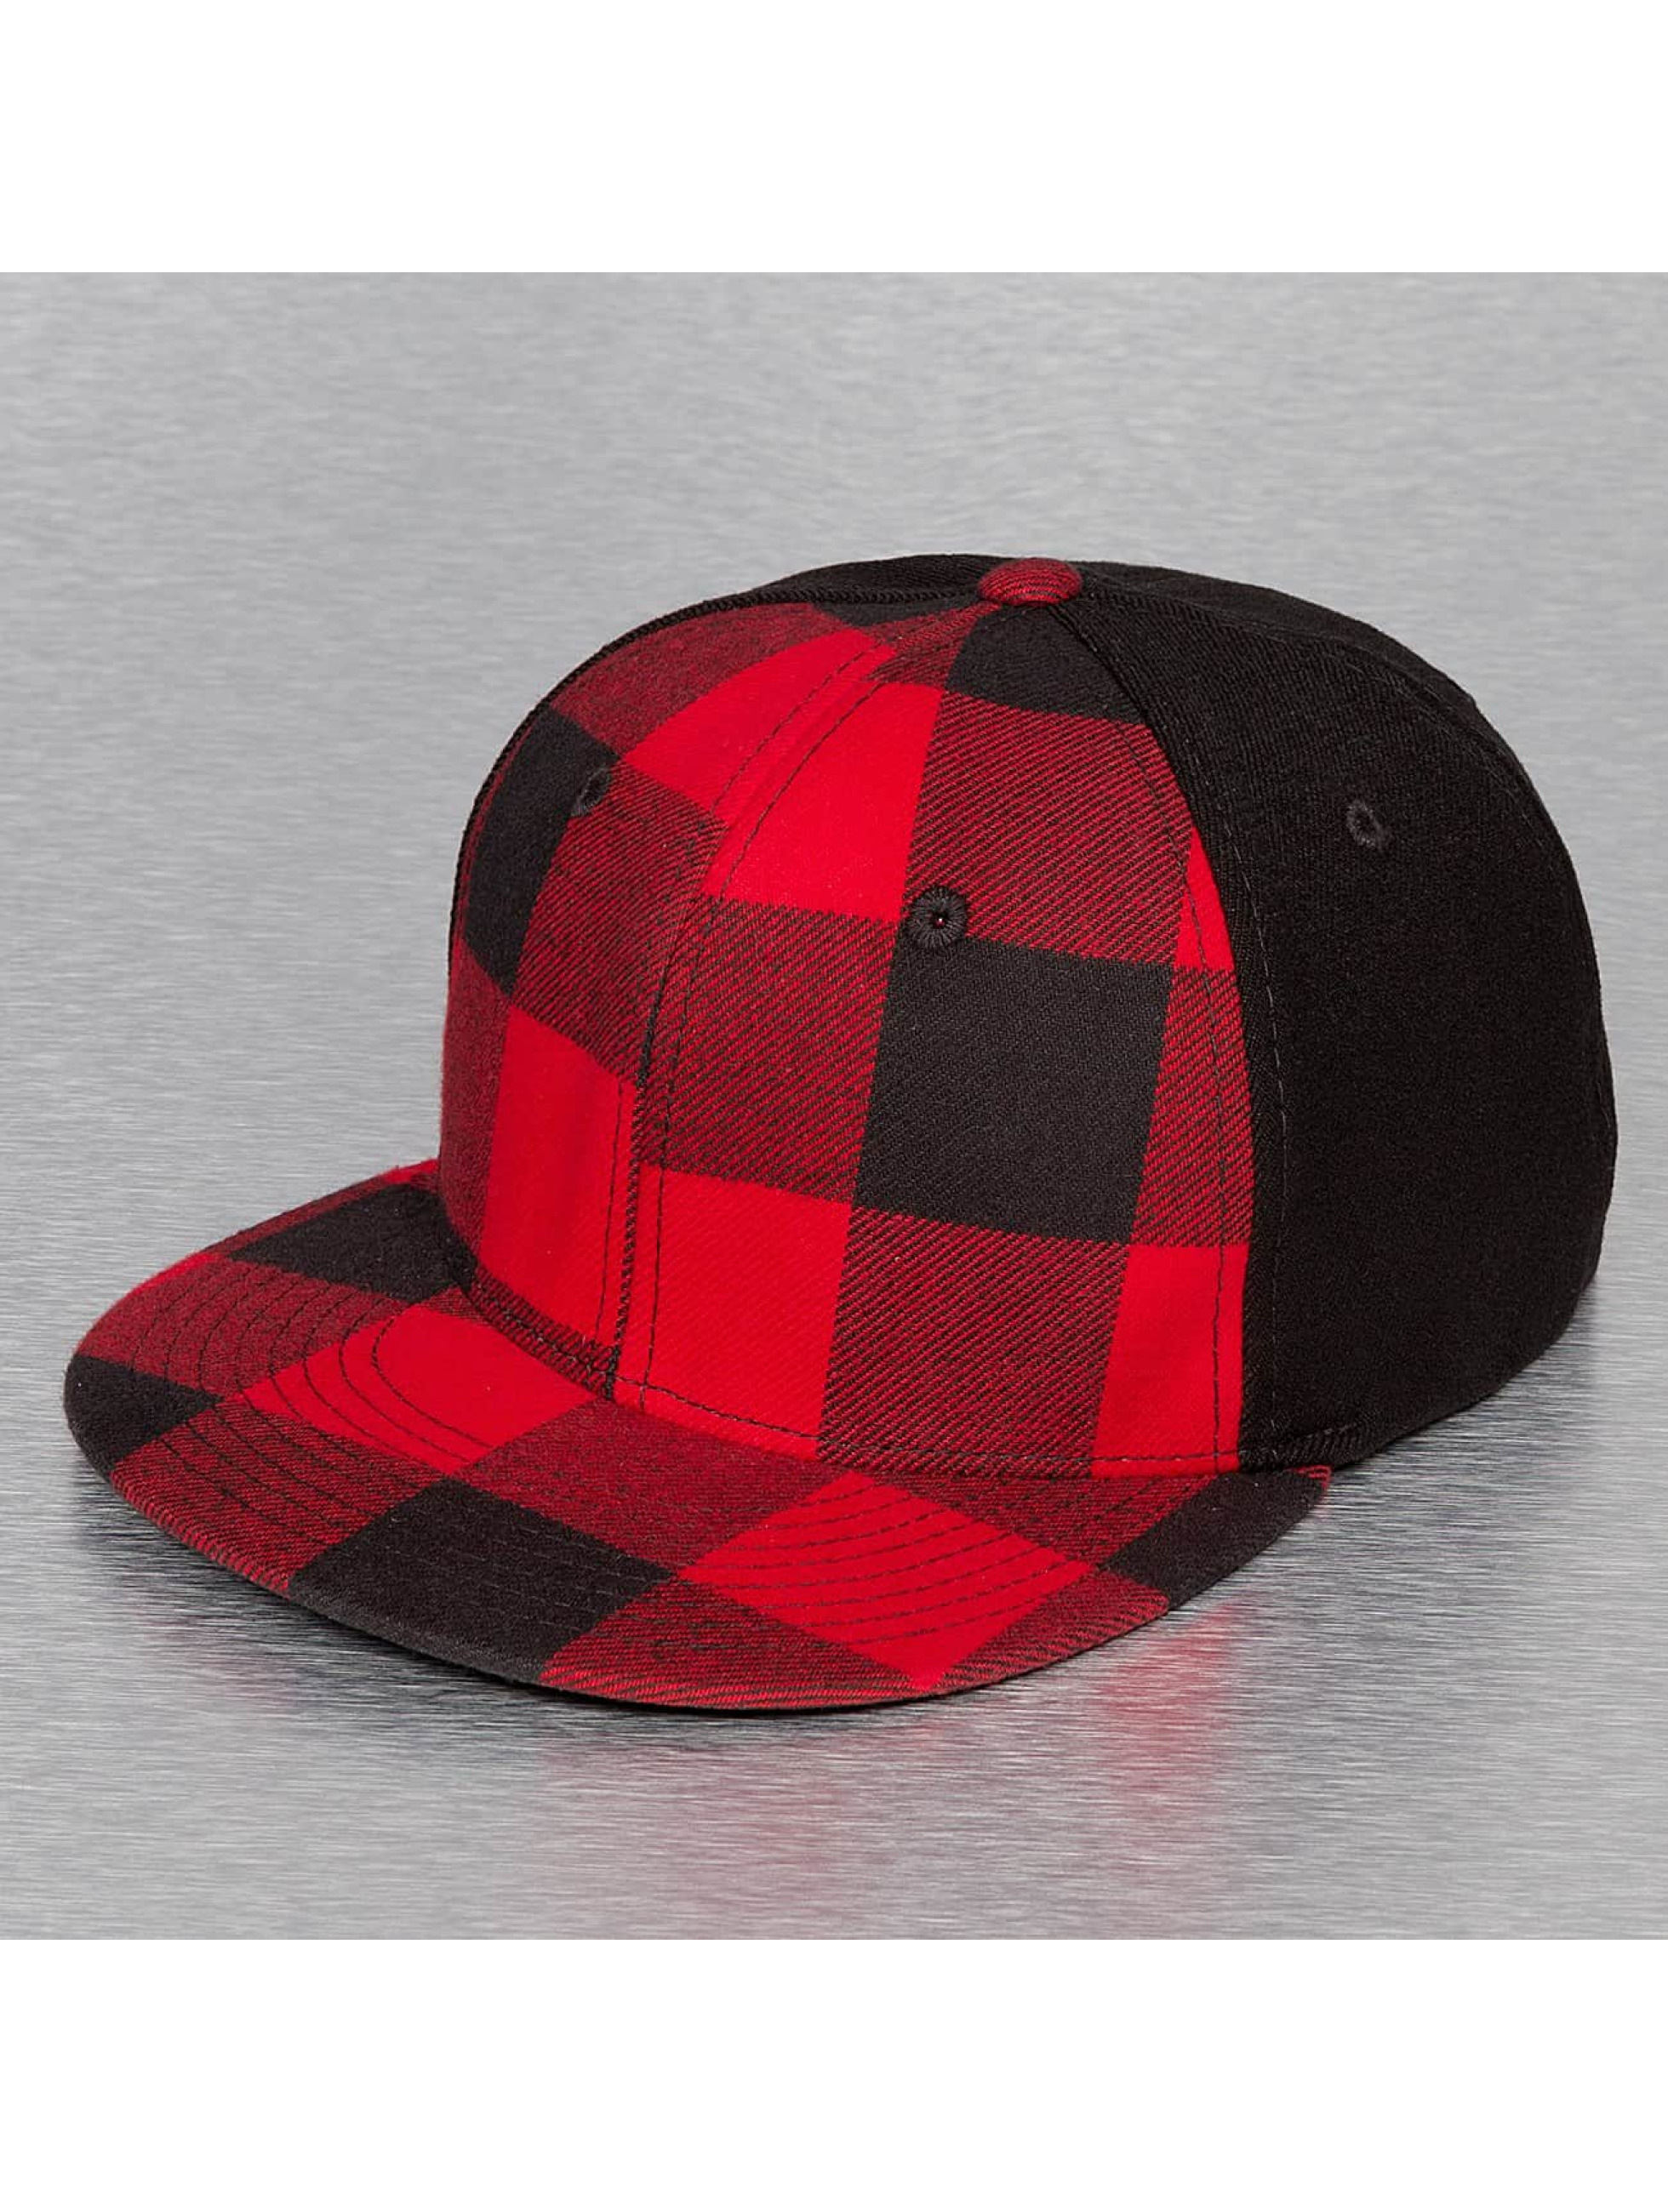 Decky USA Casquette Flex Fitted Plaid Flat Bill rouge